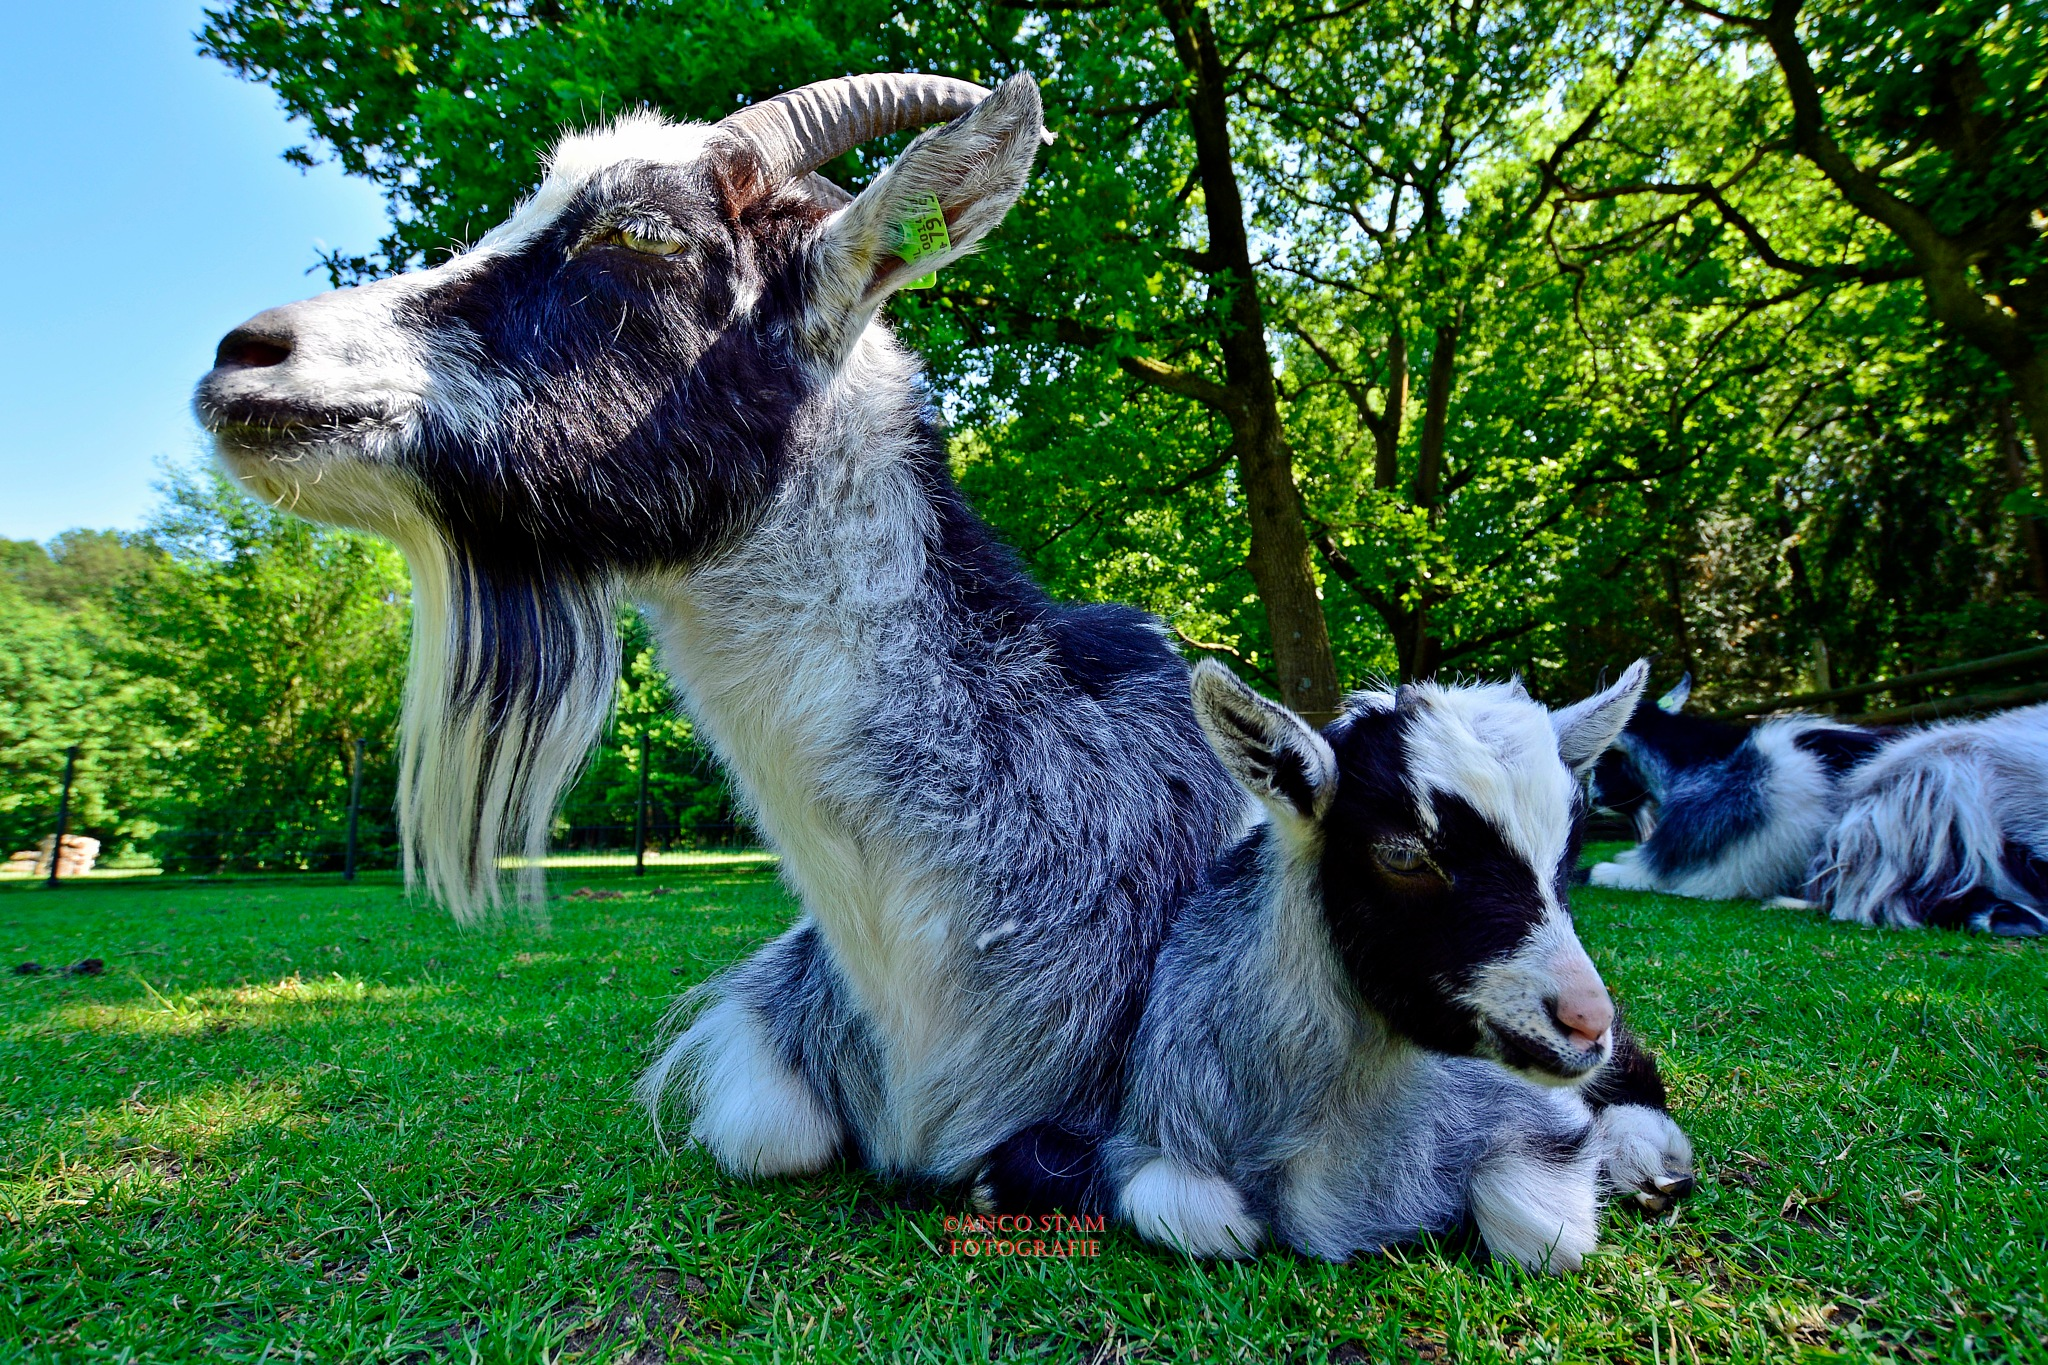 goat models by Anco Stam